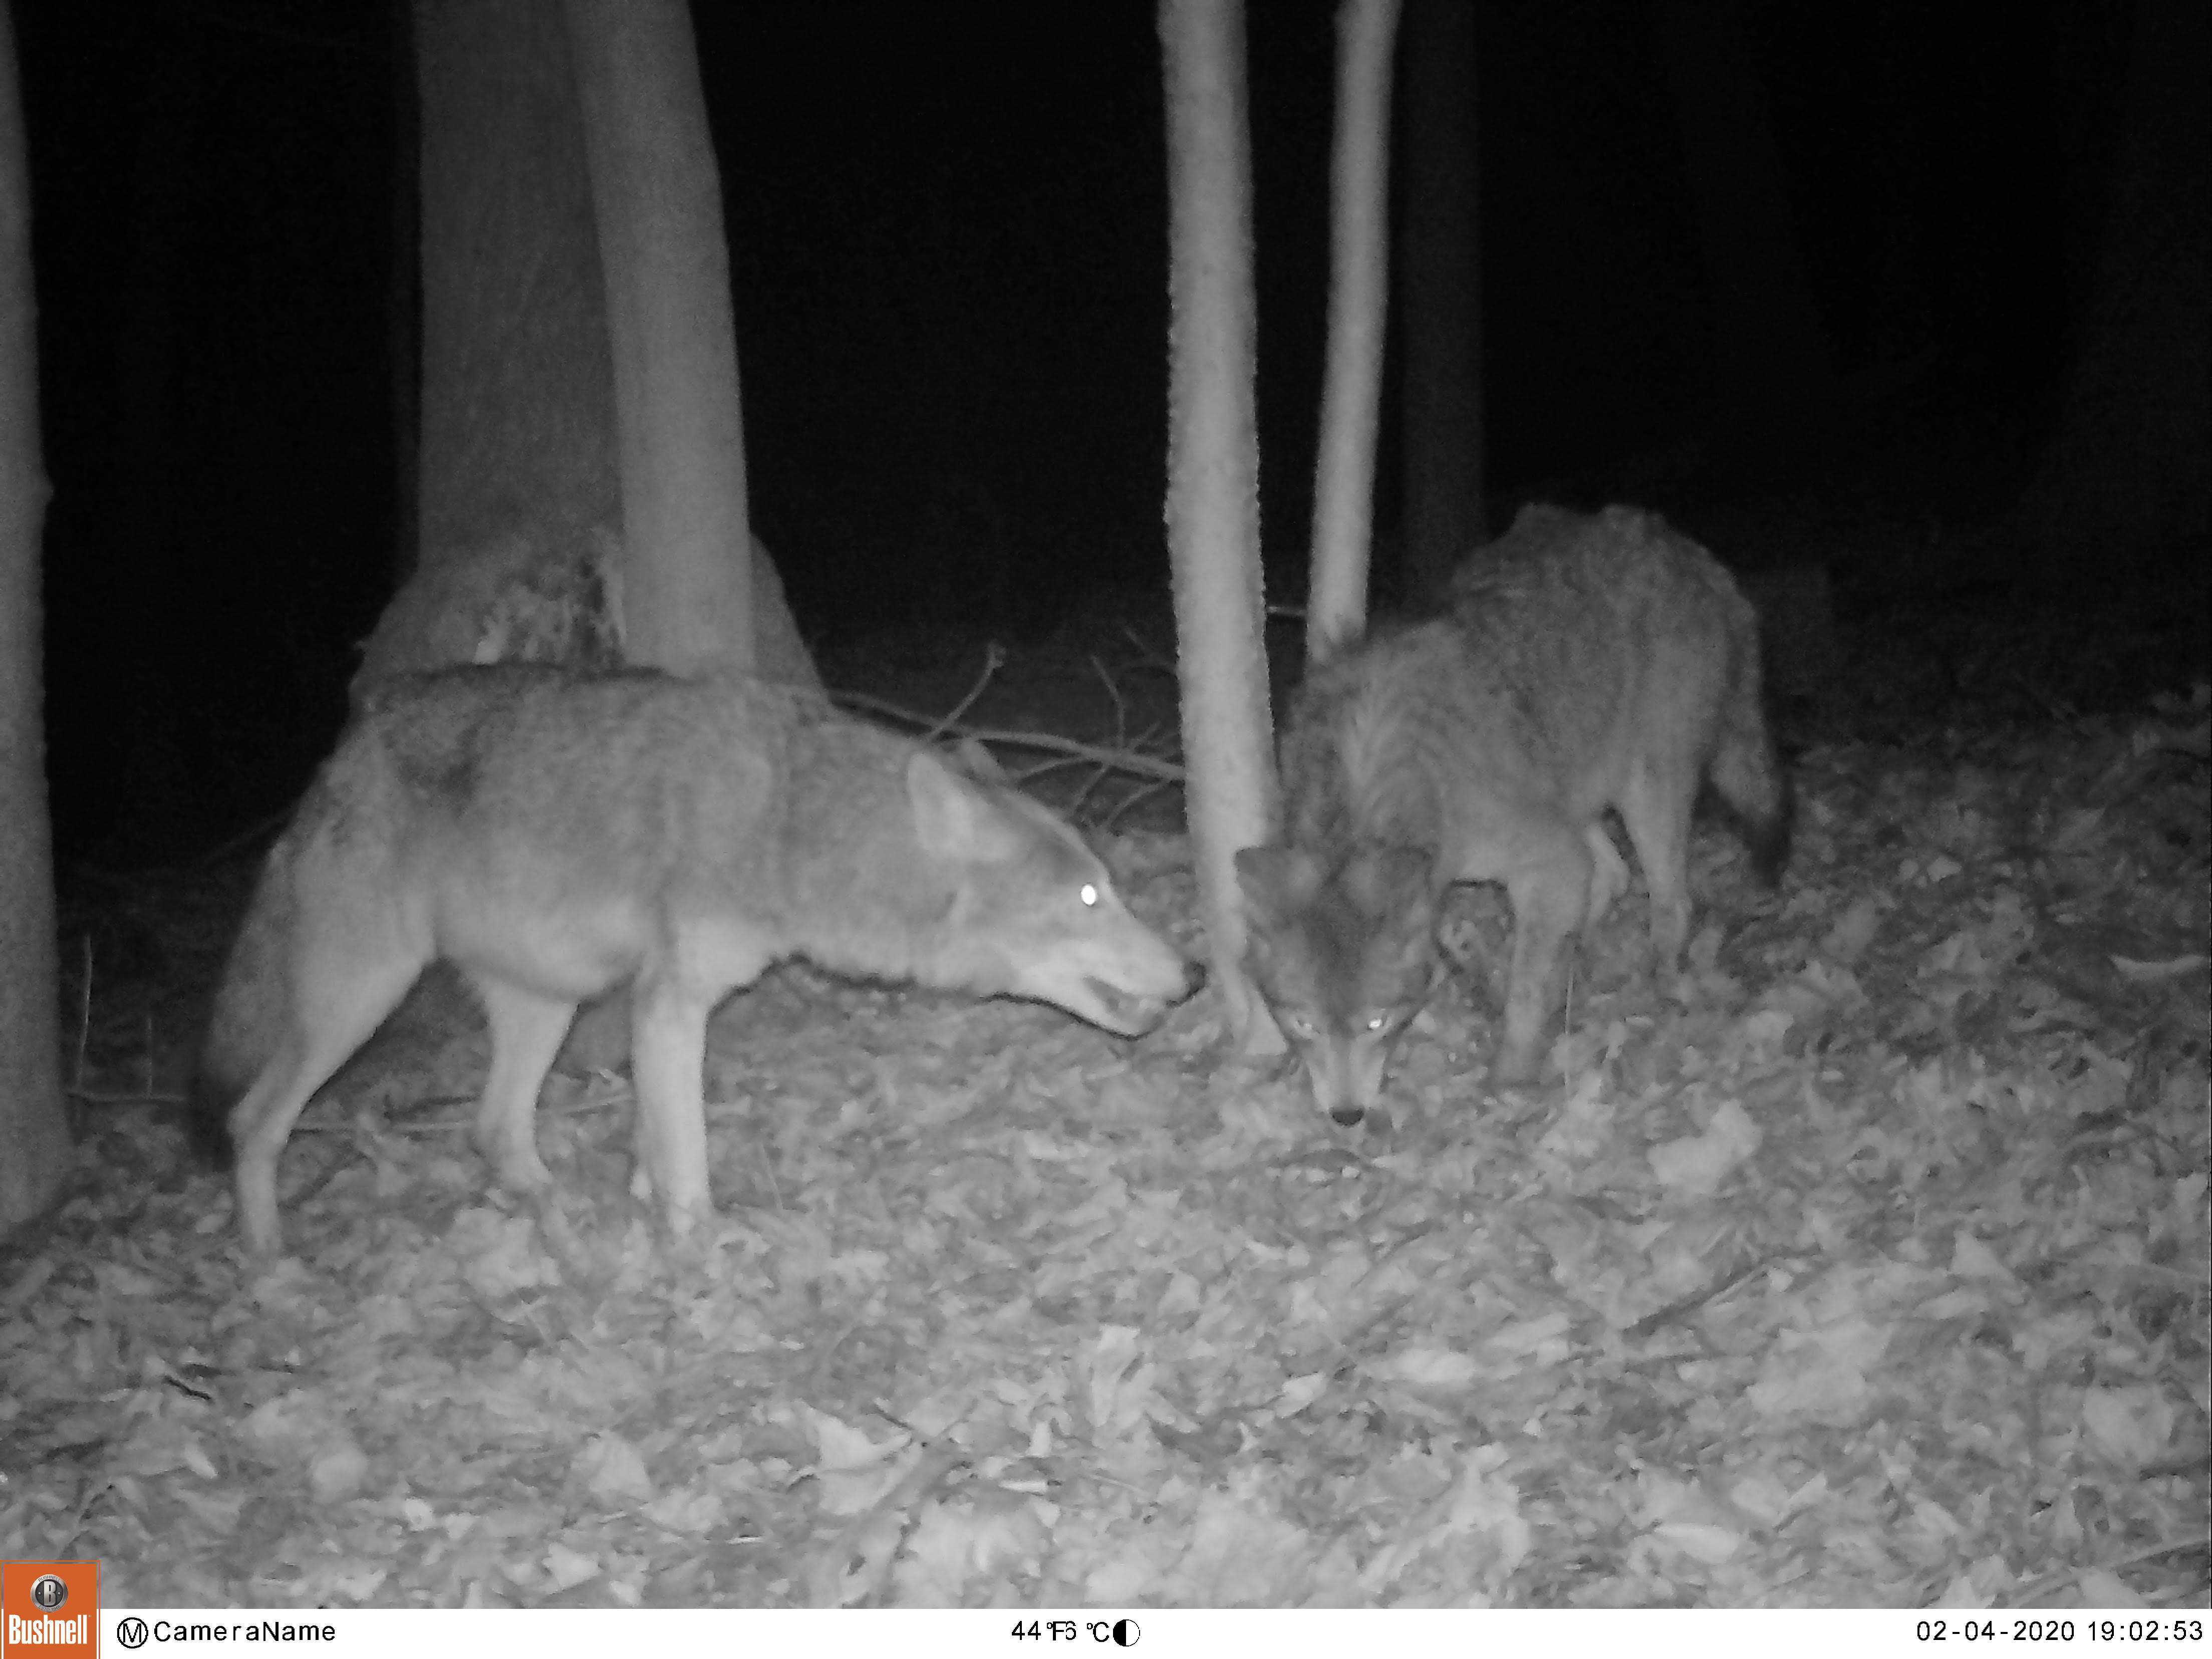 SCENES OF ROCKLAND – Coyotes in Tomkins Cove